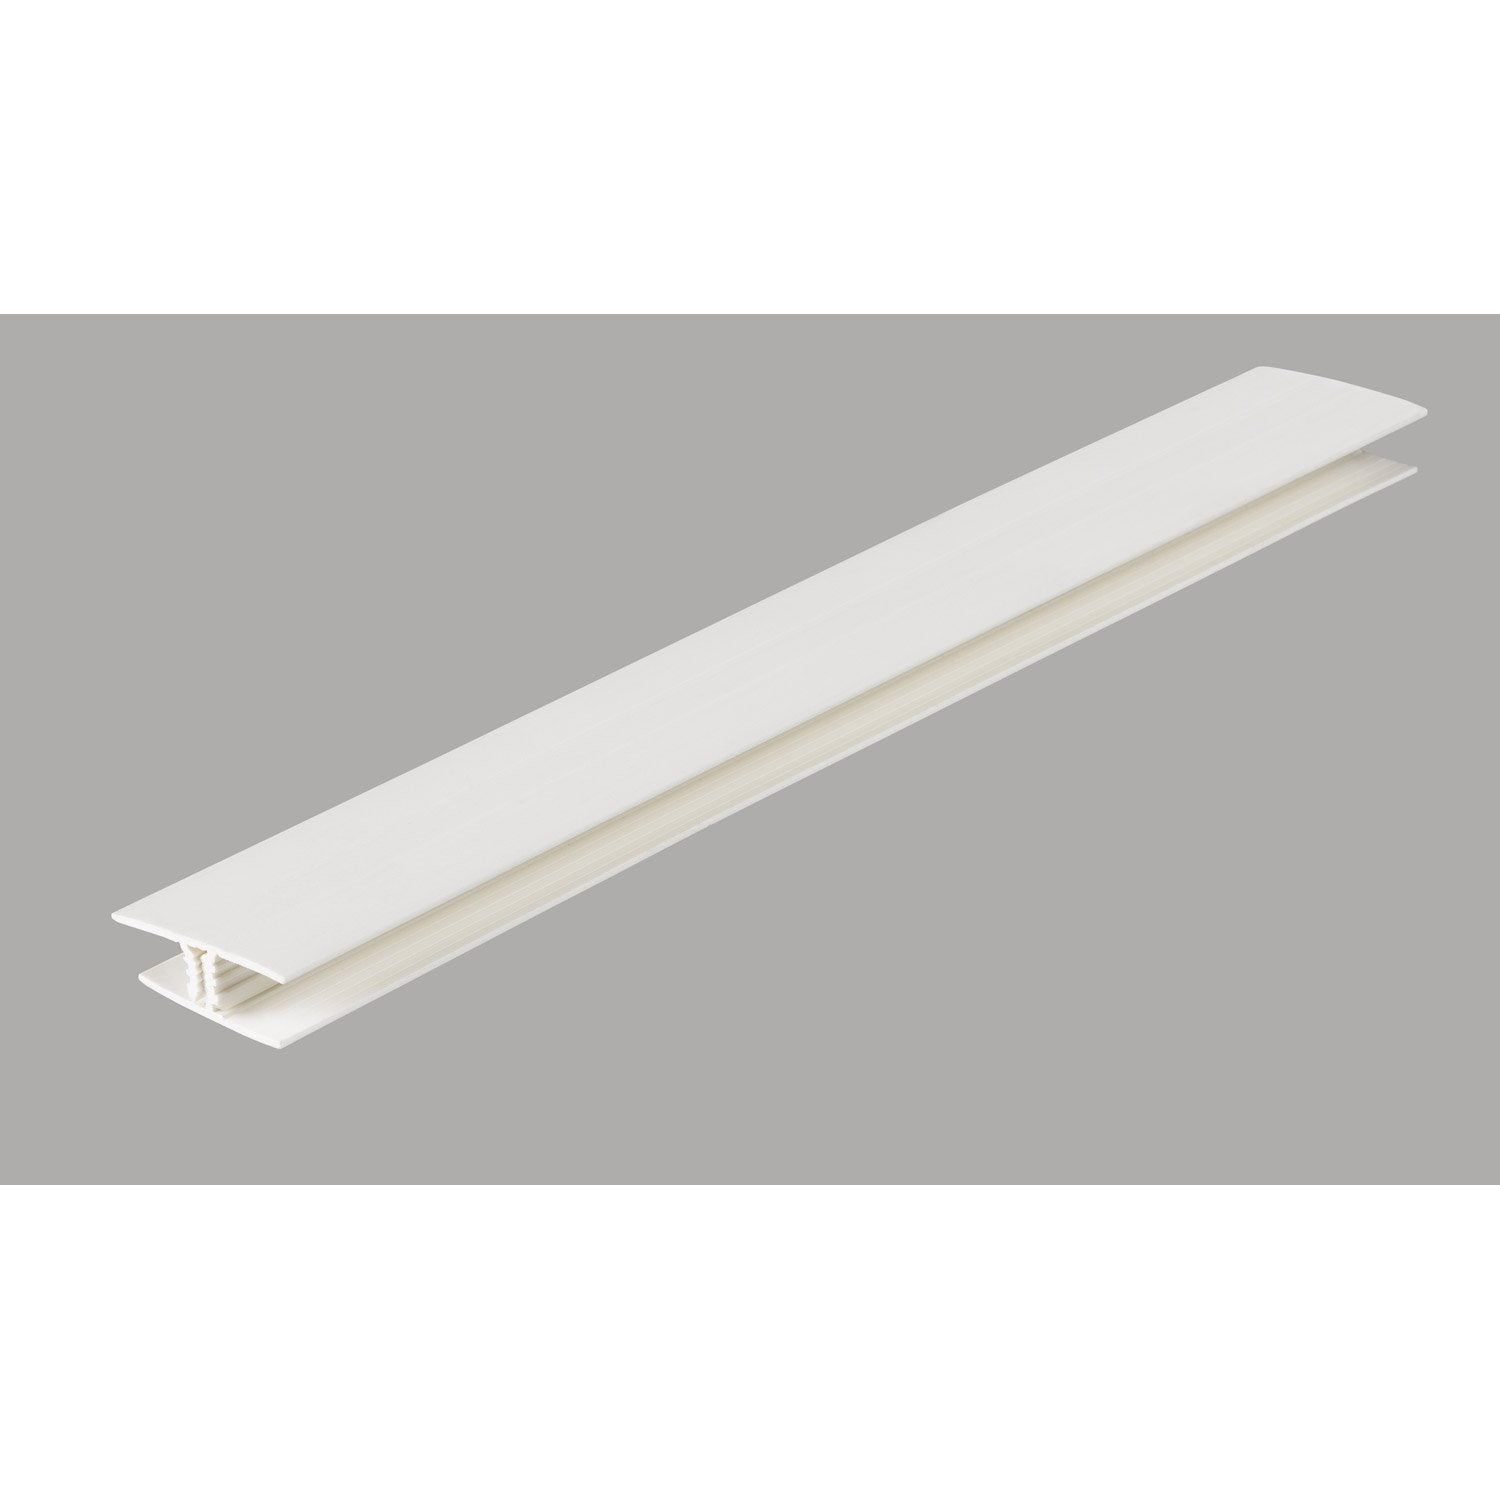 Profil de finition pour lambris pvc 5 5 x 1 2 cm l 2 6 m leroy merlin - Leroy merlin lambris pvc ...